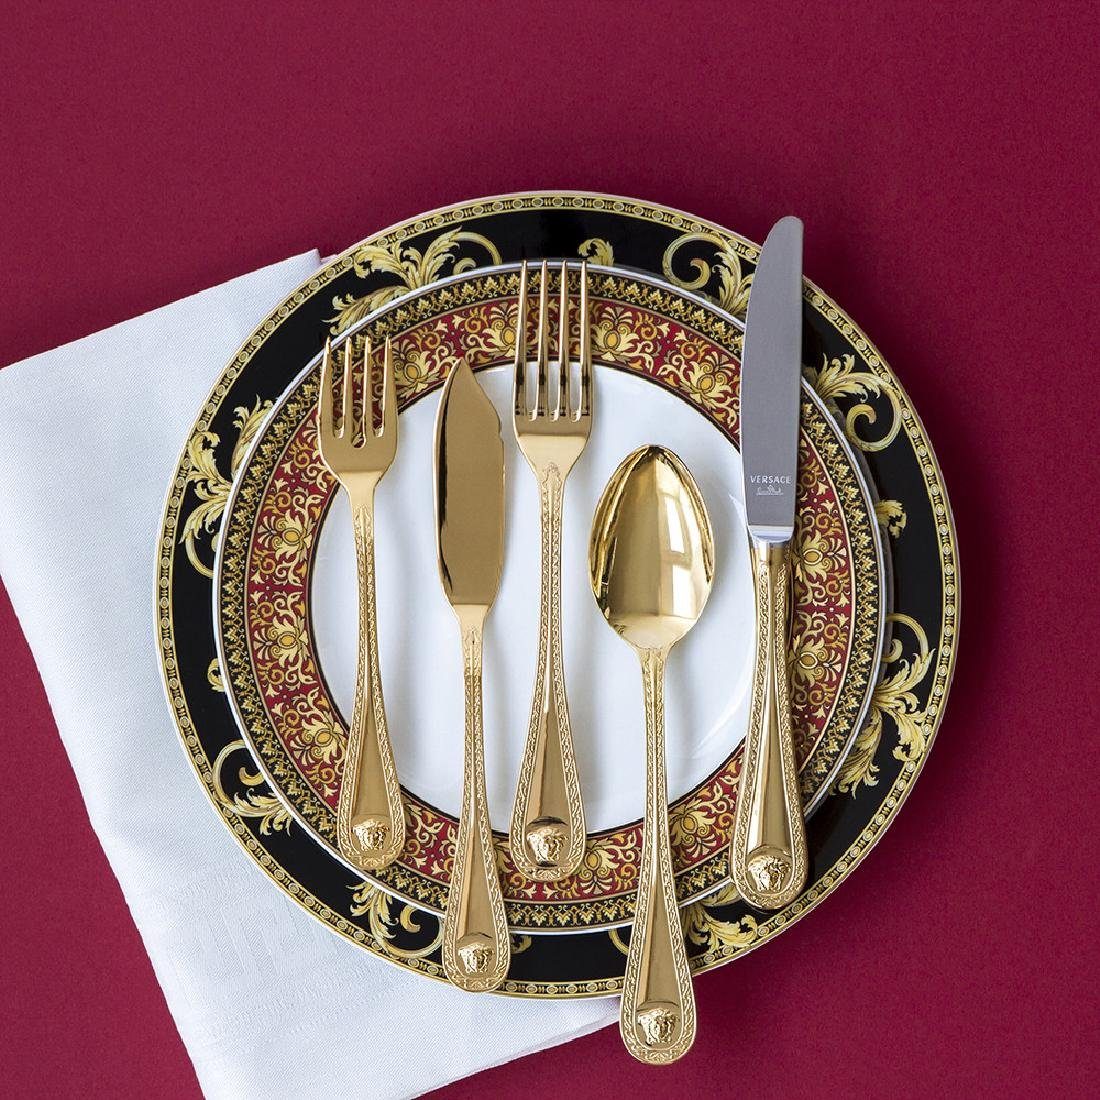 36 Piece Gilded Rosenthal Versace Cutlery Set